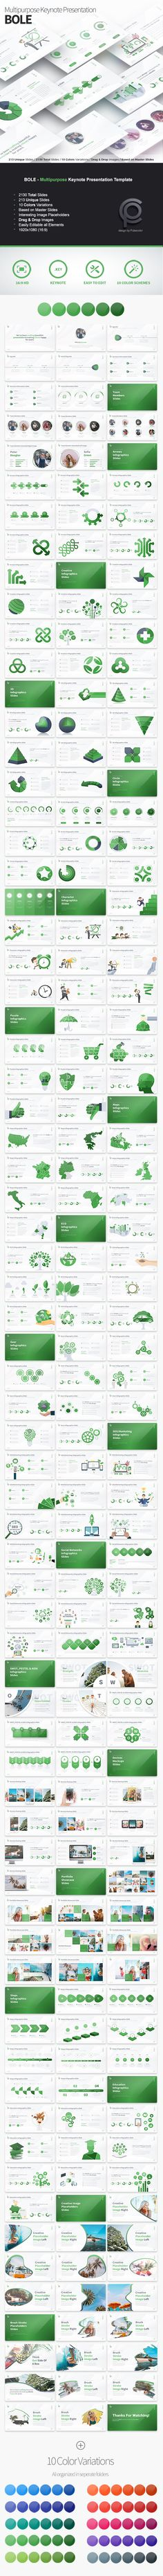 Bole - Multipurpose Keynote Presentation - Business Keynote Templates  Download link: https://graphicriver.net/item/bole-multipurpose-keynote-presentation/22040821?ref=KlitVogli